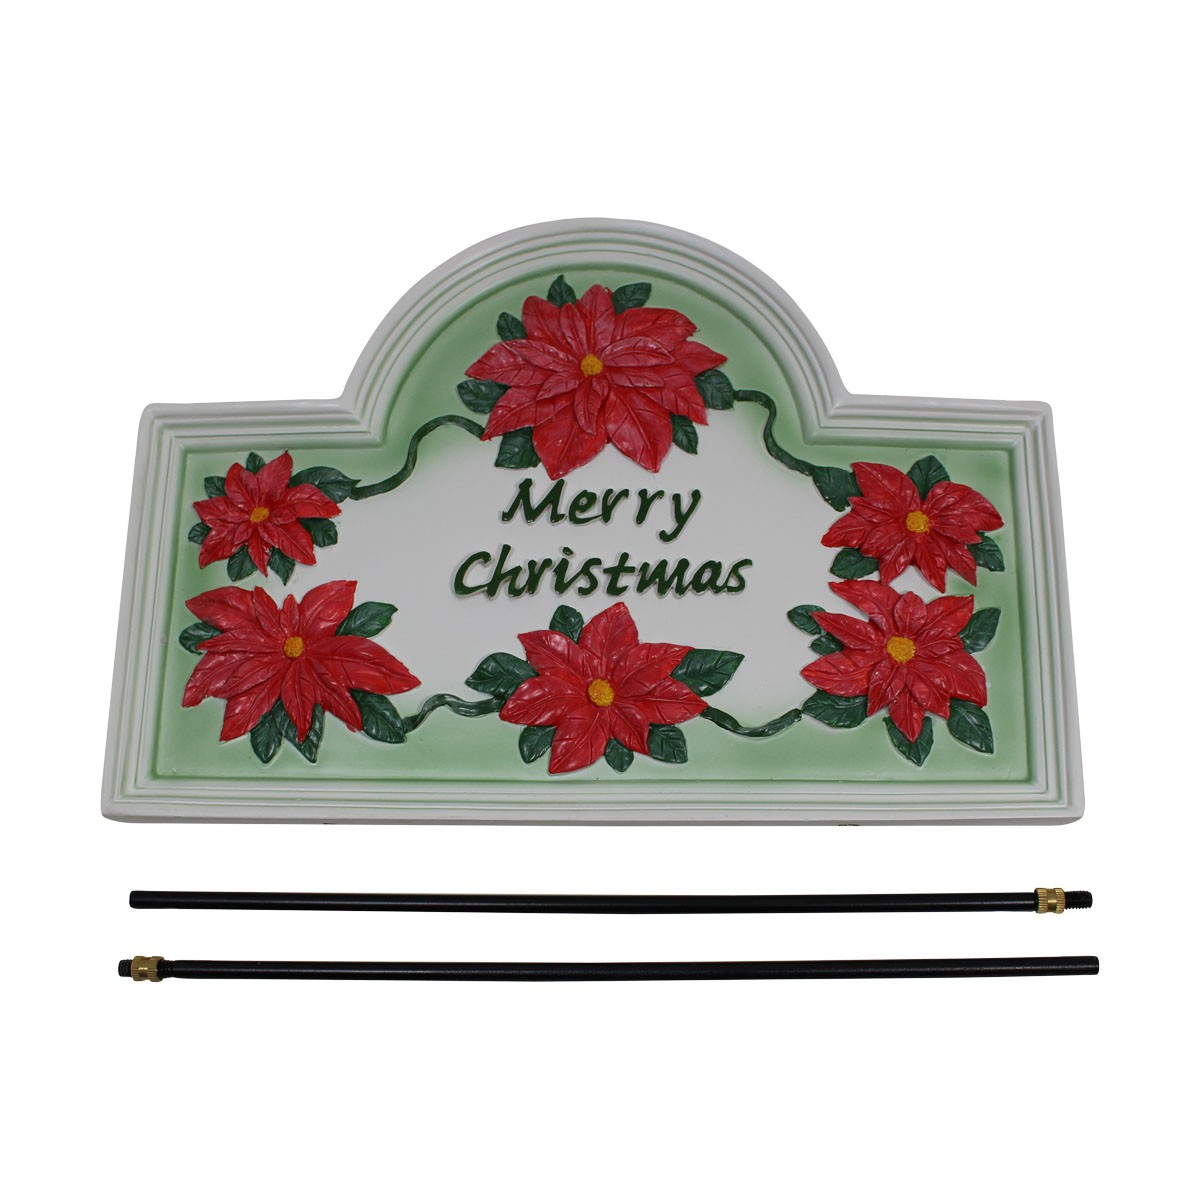 Plaque White Cast Metal Christmas With Stand Christmas Plaque Christmas Decor With Stand Holiday Plaque